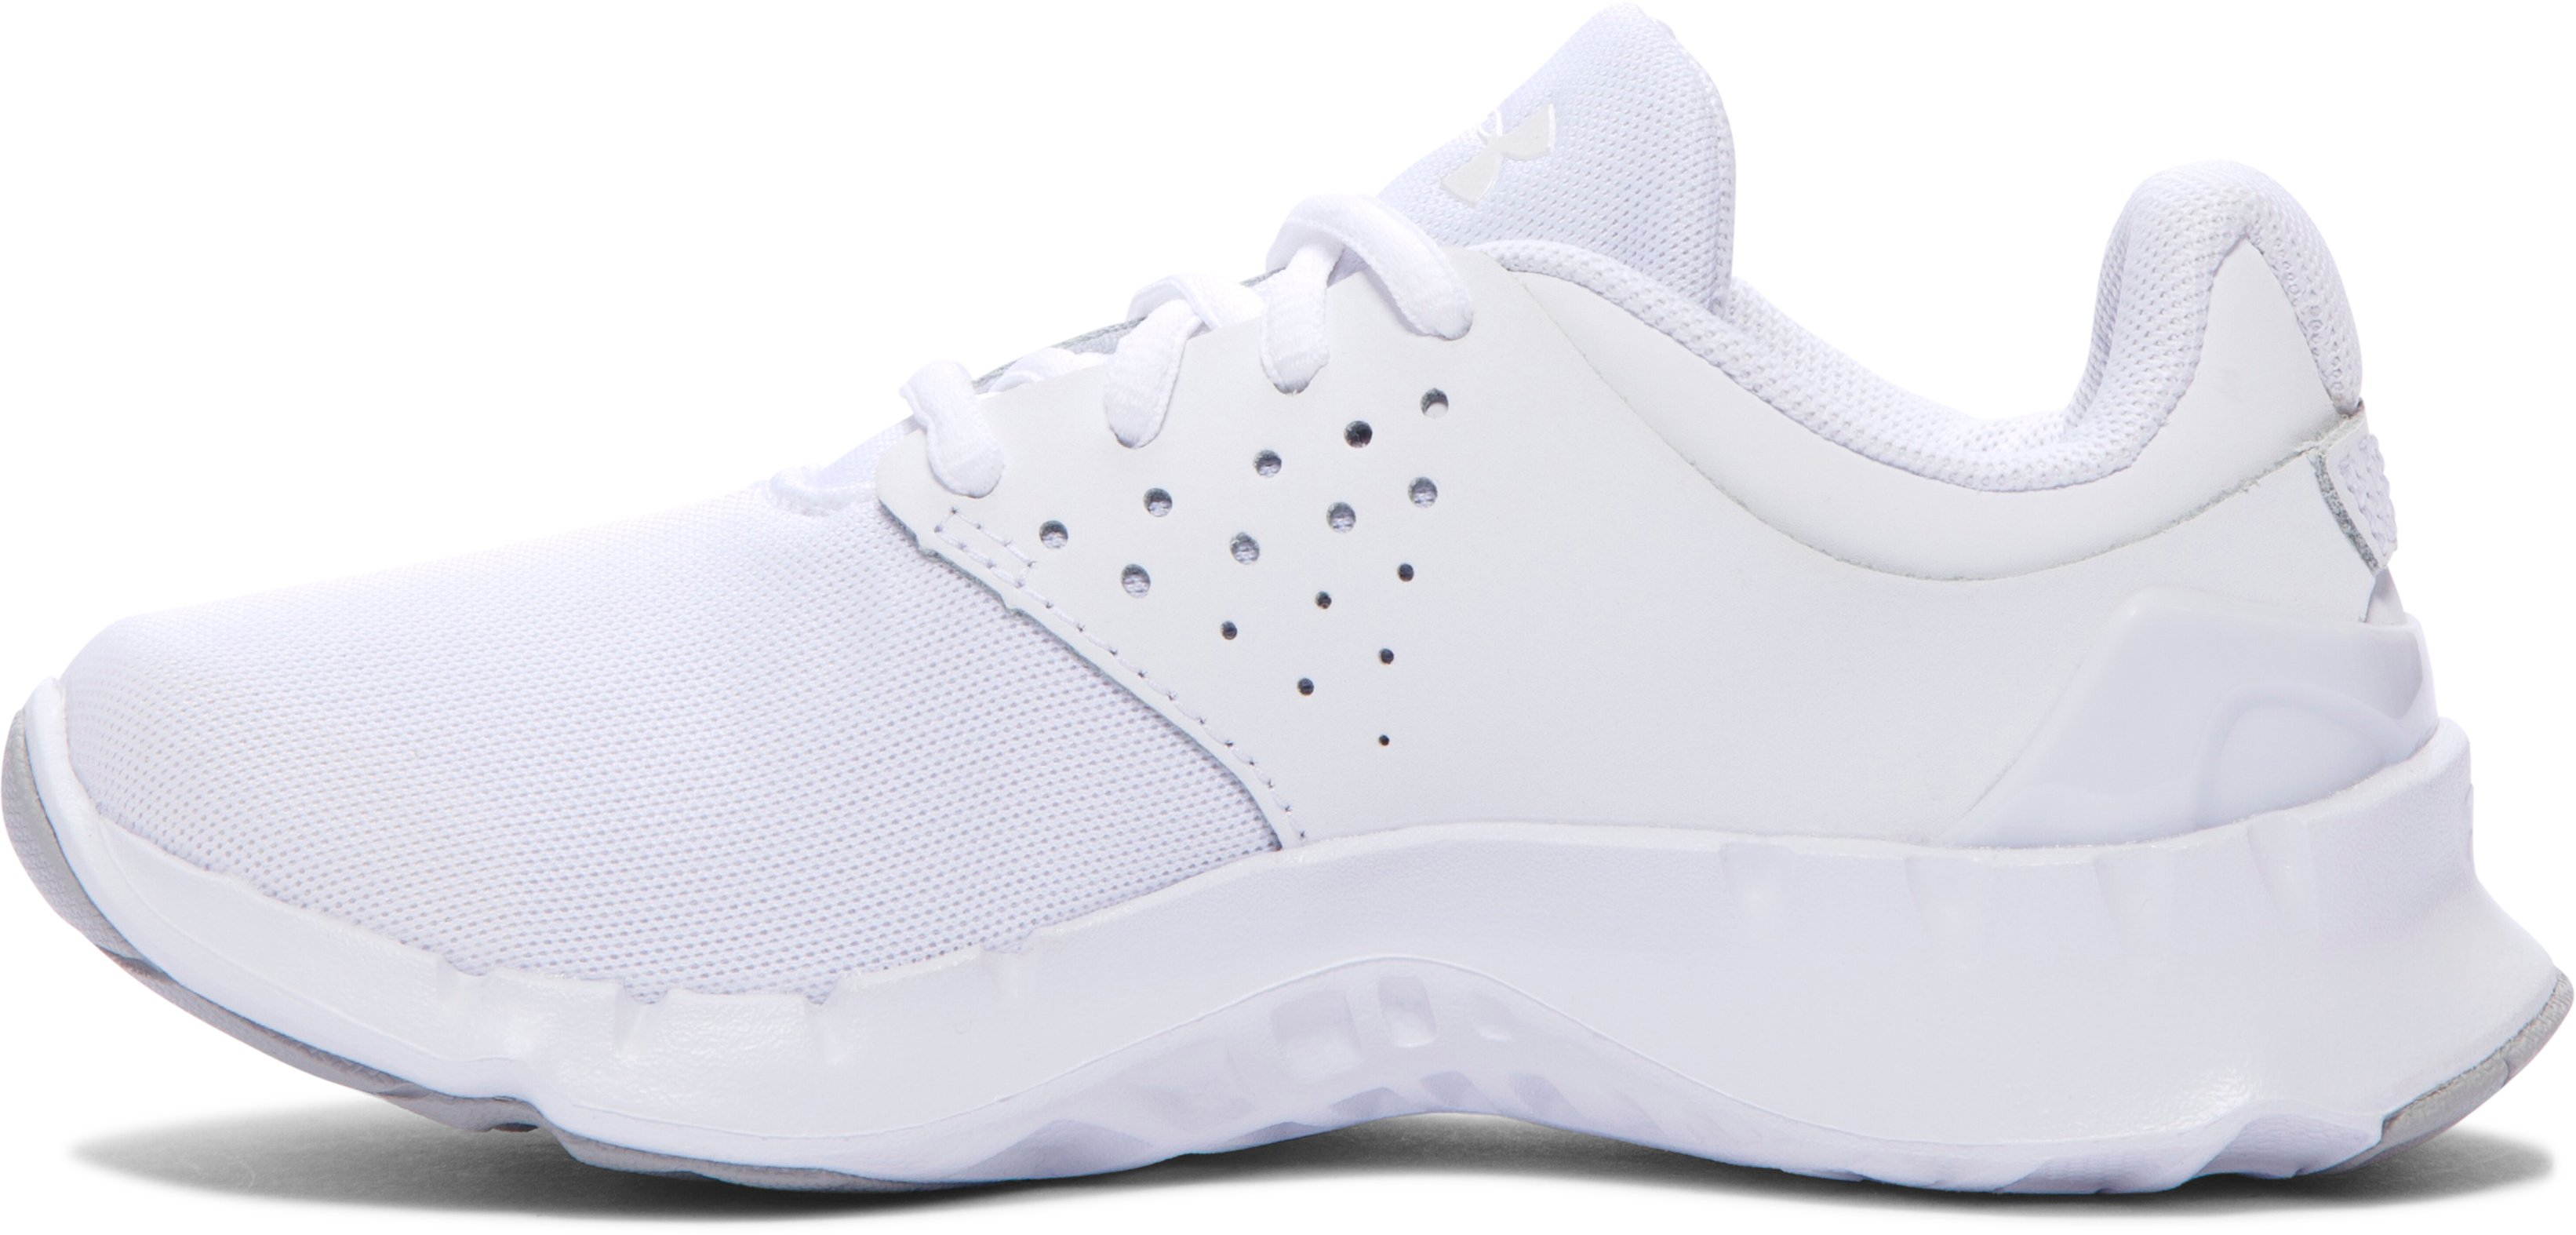 Kids' UA Pre-School Flow U Running Shoes, White